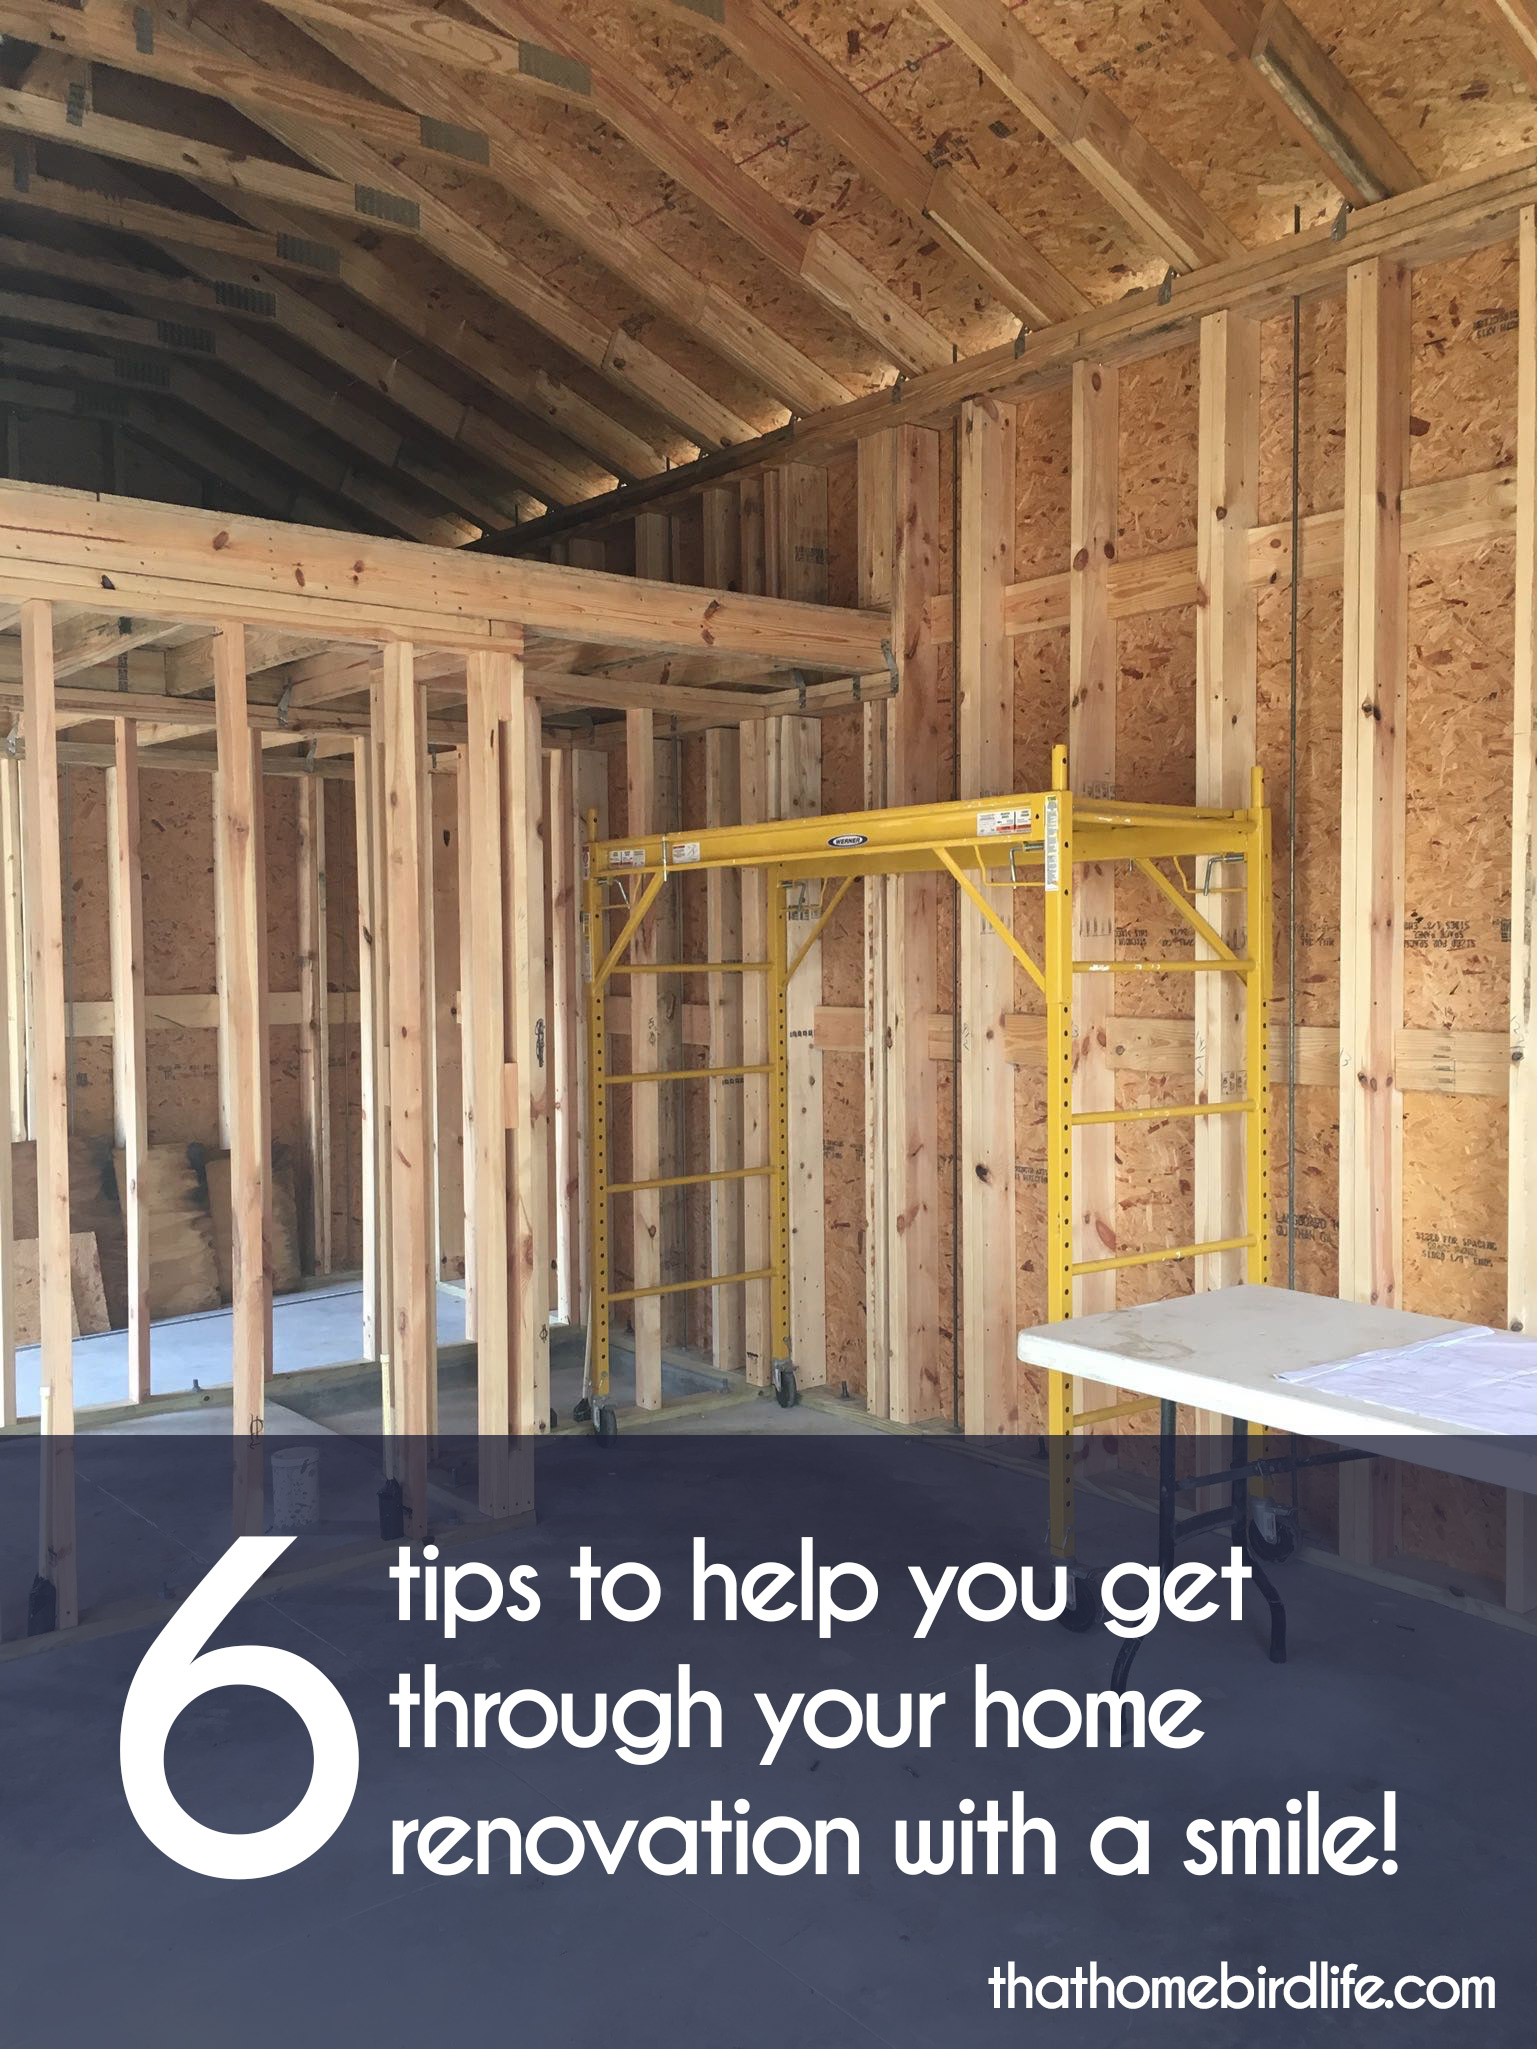 Six tips to help you get through your home renovation with a smile | That Homebird Life Blog